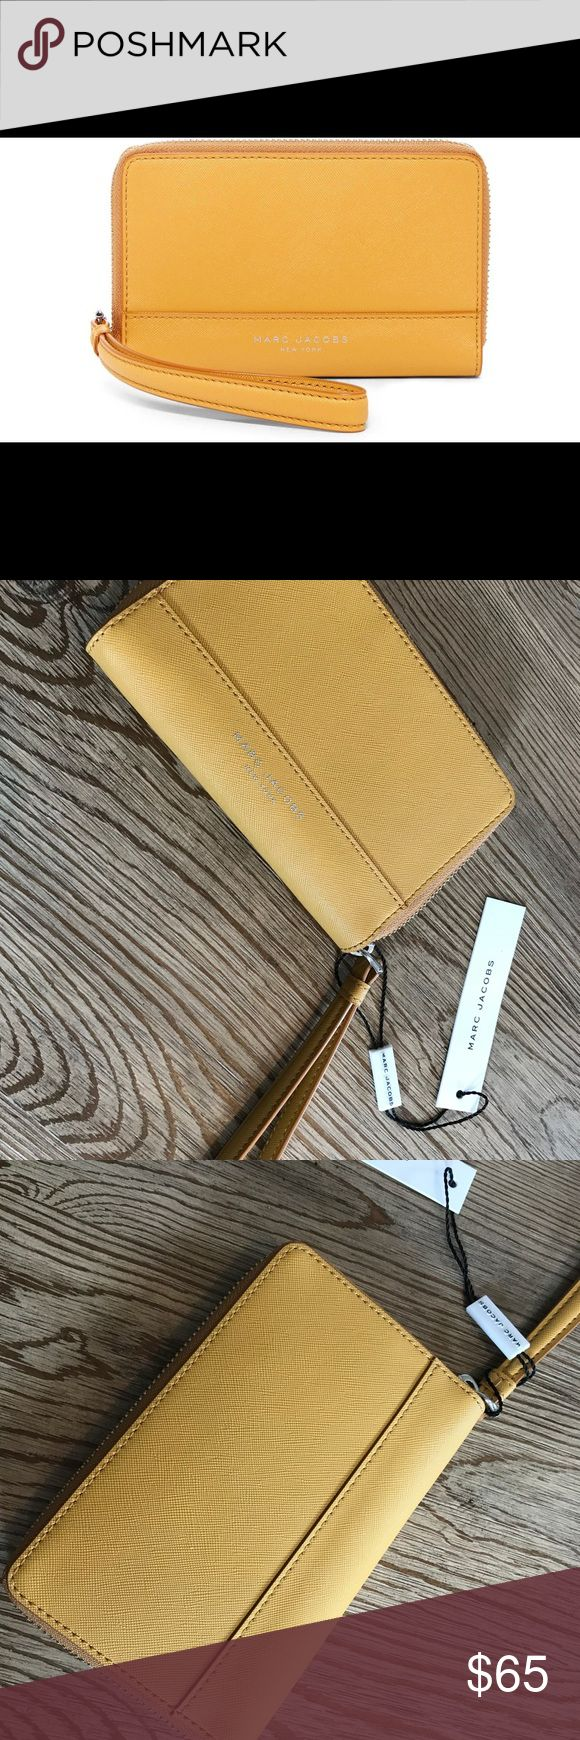 🎉TH SALE🎉NWT MARC JACOBS wallet in Bright Gold new with tags Marc Jacobs Saffiano wallet in bright gold Marc Jacobs Bags Wallets